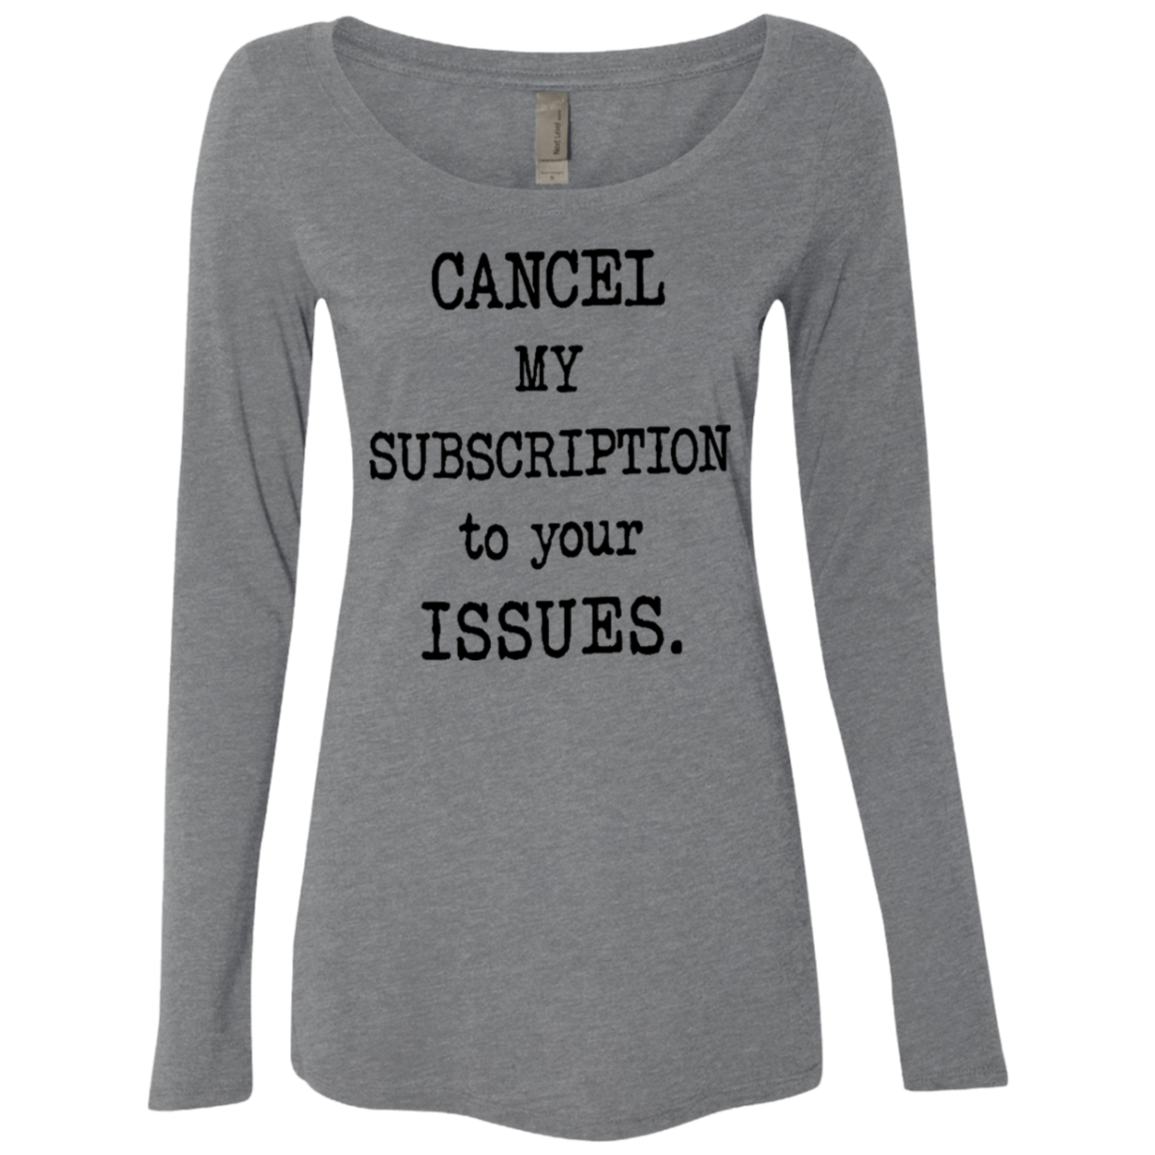 Cancel My Subscription to Your Issues Women's Long Sleeve Tee - Trendy Tees